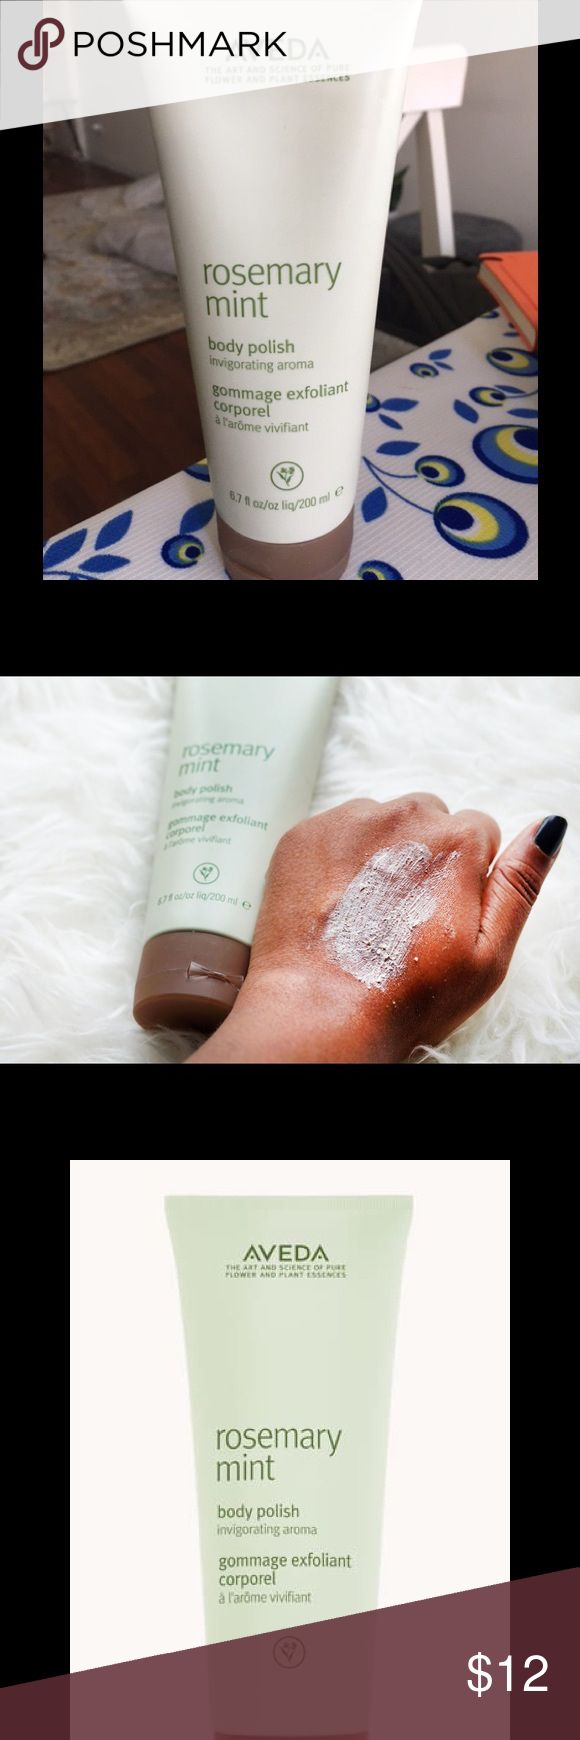 Body polish from Aveda Body exfoliant Aveda Makeup